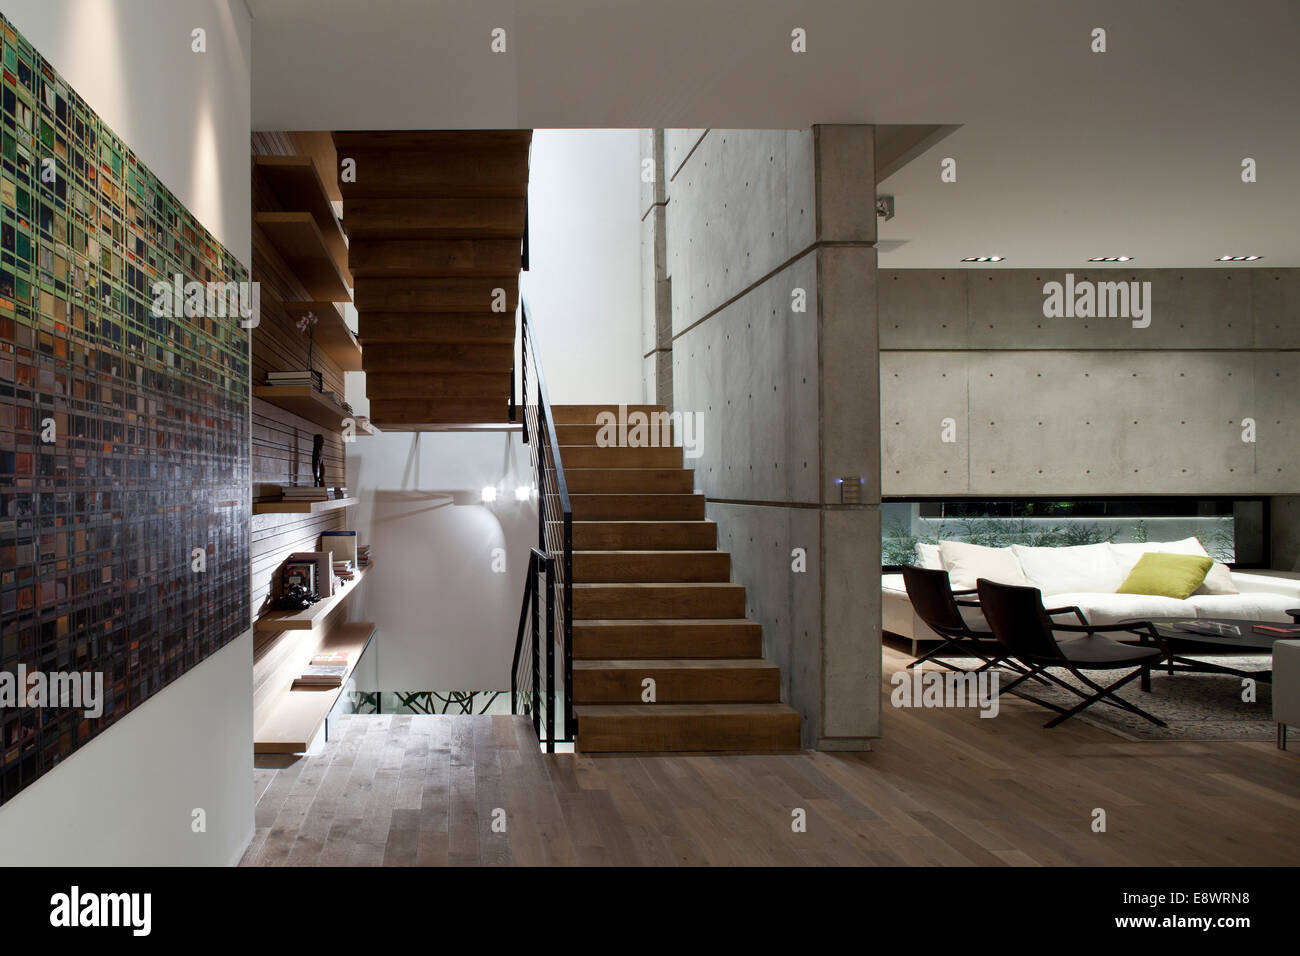 Open Plan Living Room And Staircase In D House, Israel, Middle East